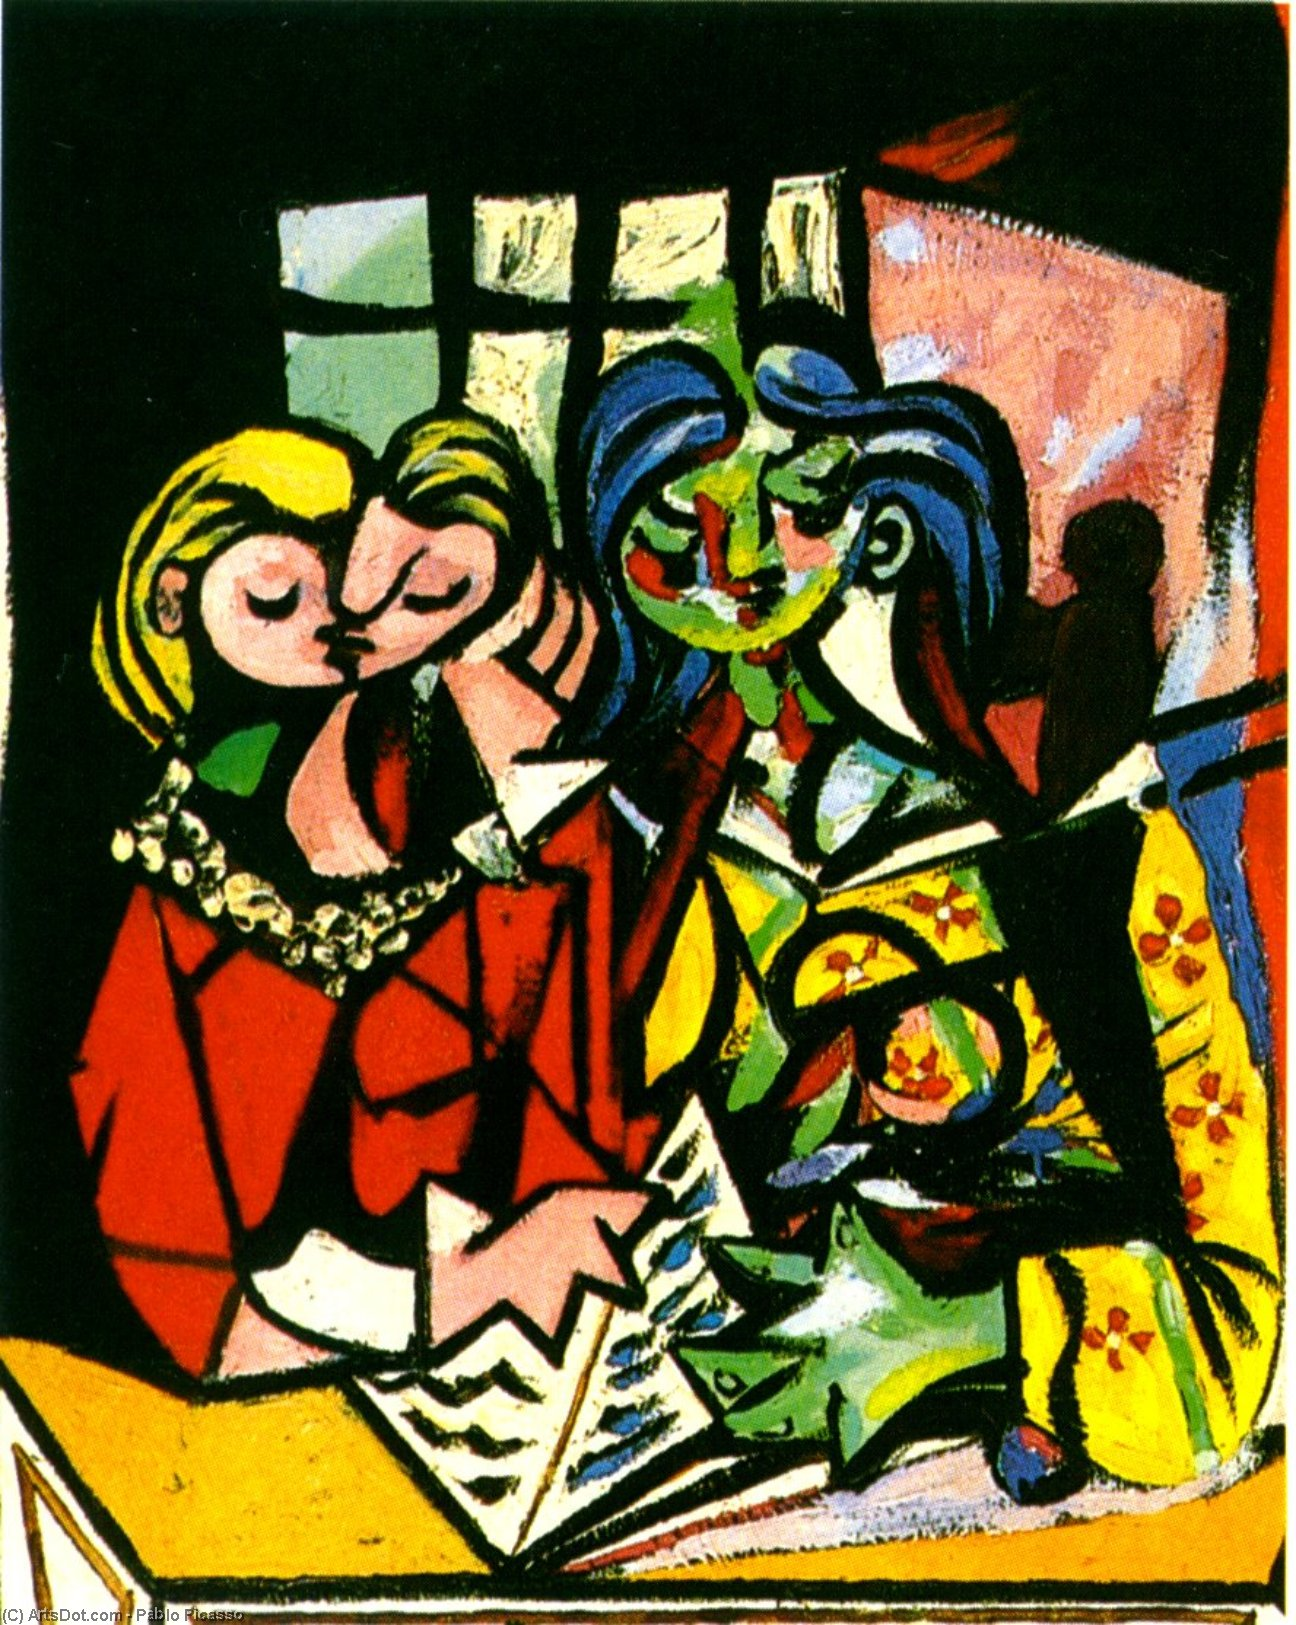 an introduction to the life and work of pablo picasso Dissertation introduction research and describe the early life of pablo picasso my father's ancestors were minor aristocrats and the hard work my parents.